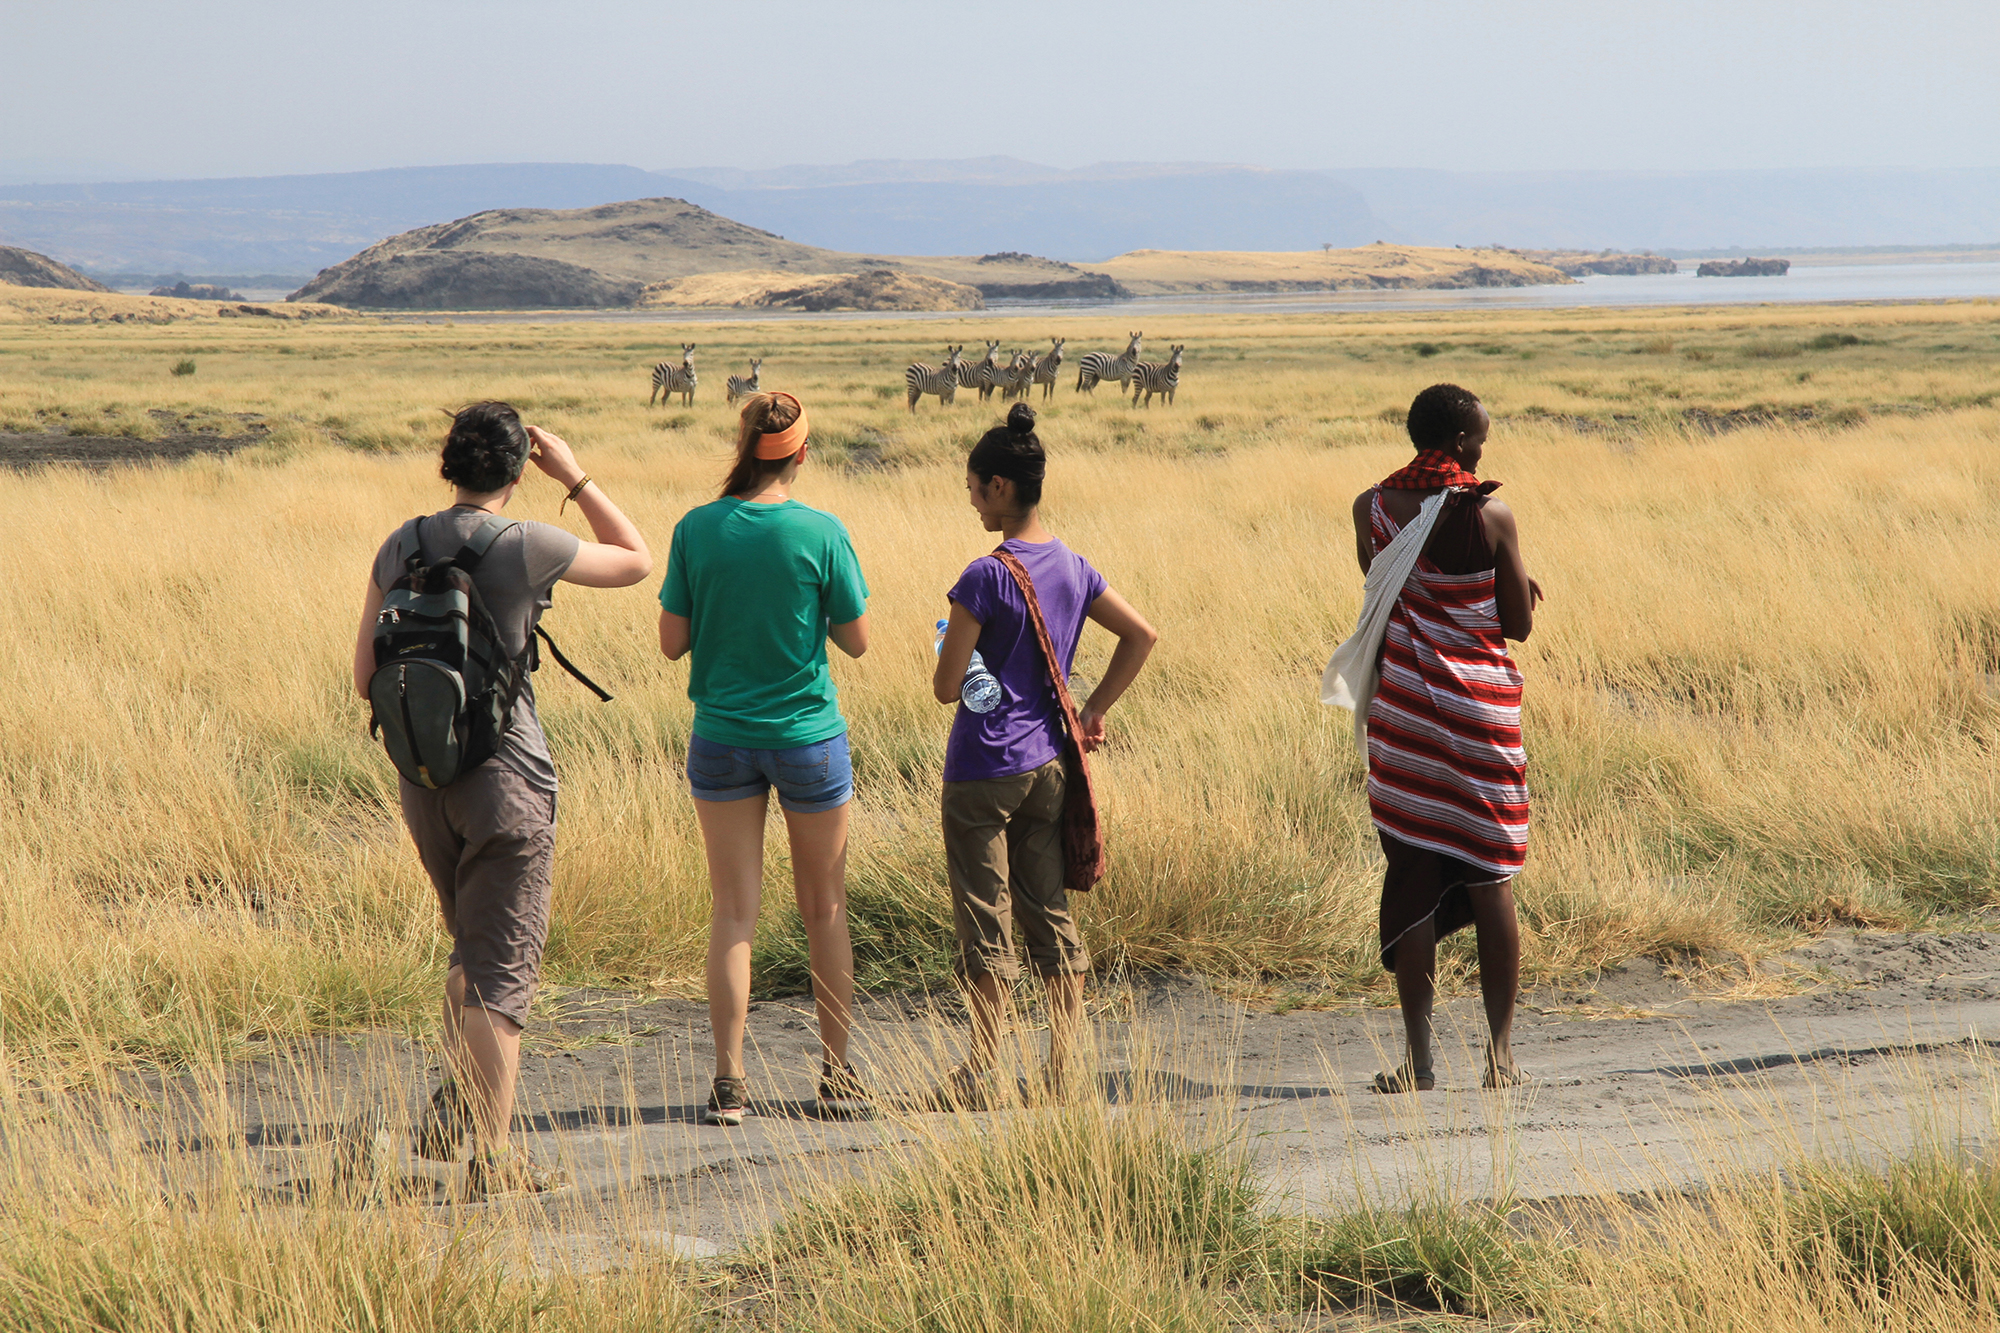 Three Western students standing in a expanse African plain with a local guide. Their backs are facing us as they gaze upon a group of Zebras in the distance.